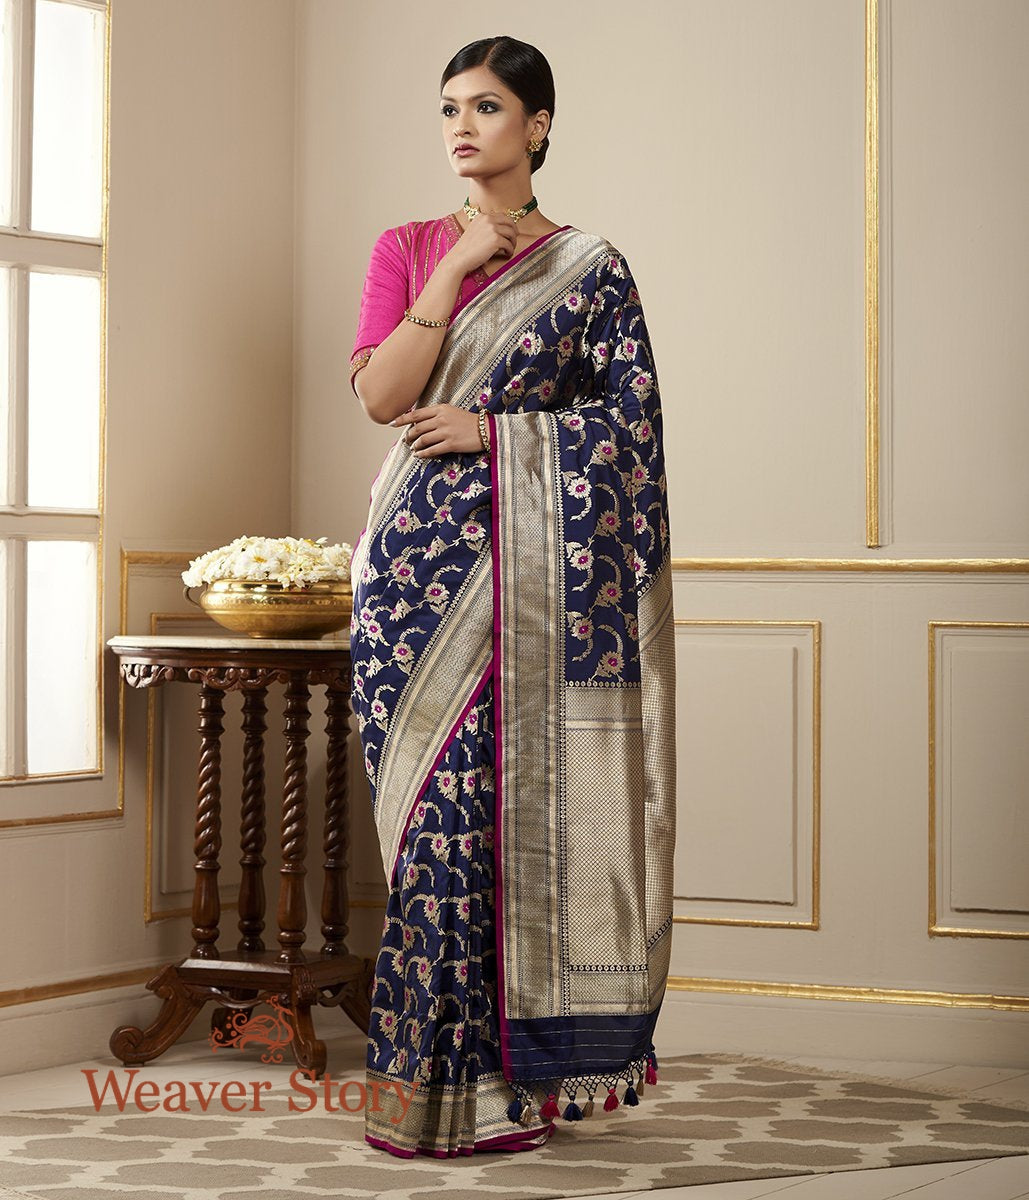 Handwoven Navy Blue Katan Silk Saree with Meenakari